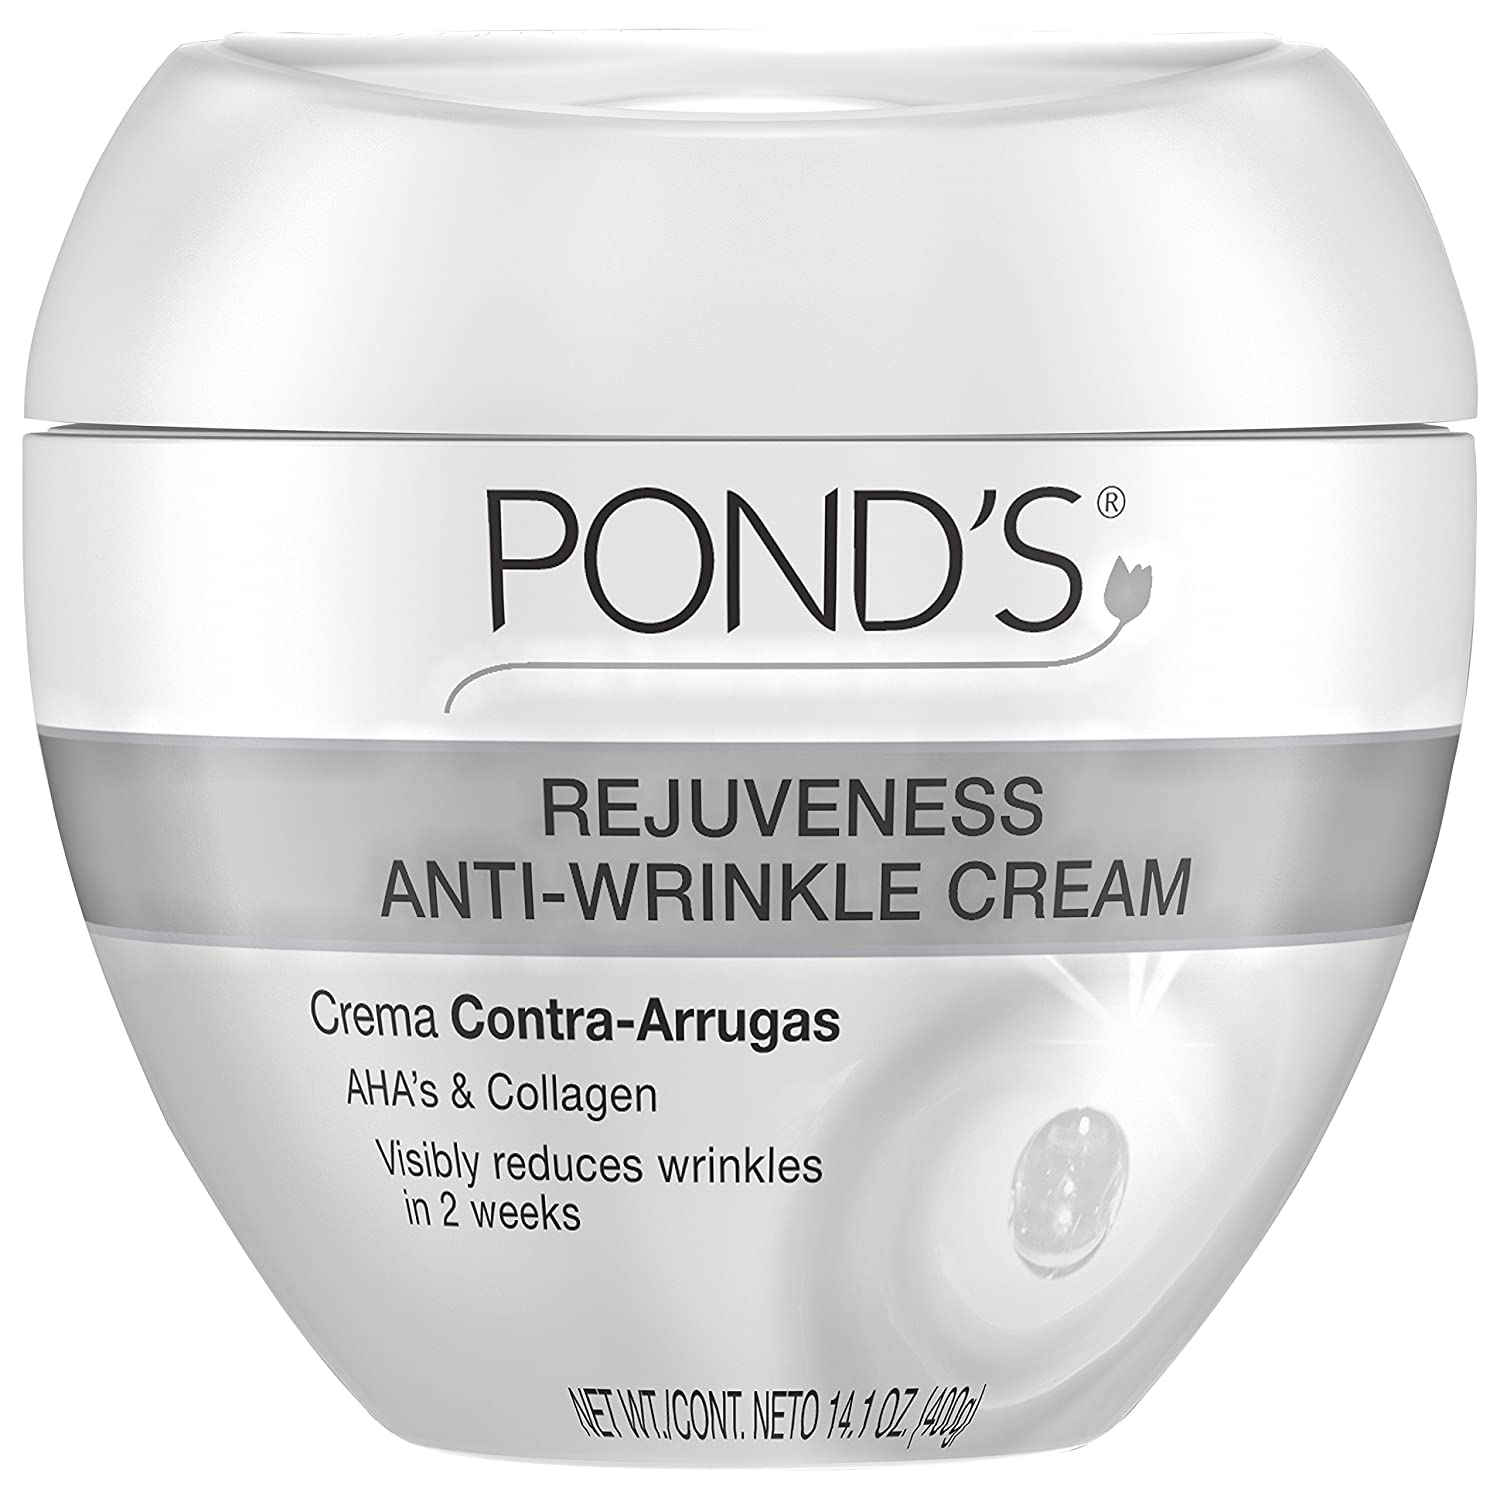 Pond's Anti-Wrinkle Cream, Rejuveness 14.1 oz Pond' s Anti-Wrinkle Cream Unilever / Best Foods 10305210172118